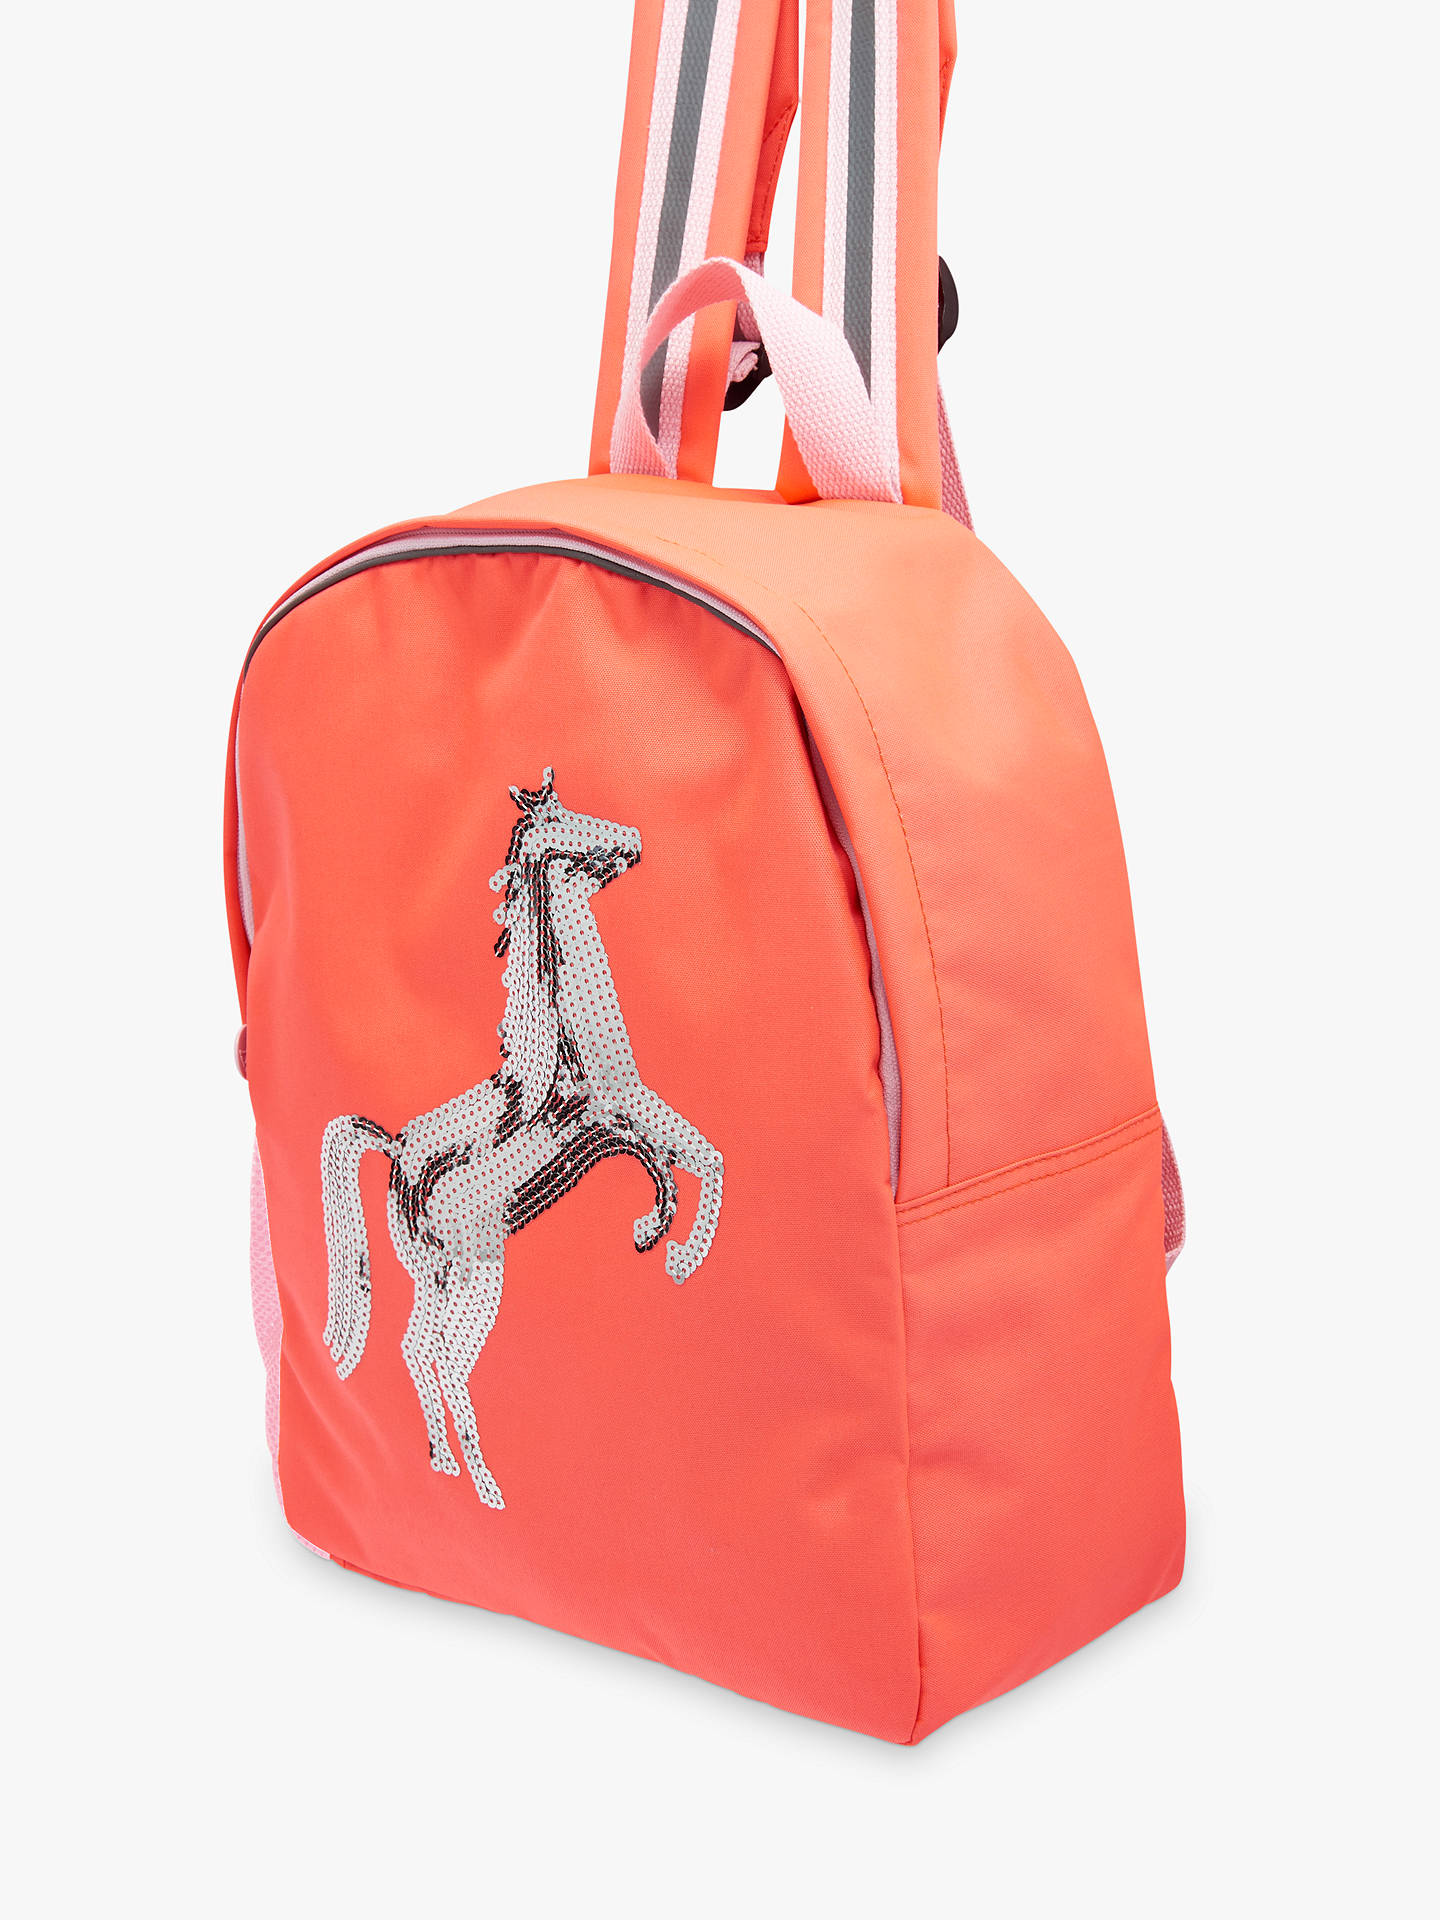 0a19cc1039d7 ... Buy Joules Children's Sequin Horse Backpack Online at johnlewis.com